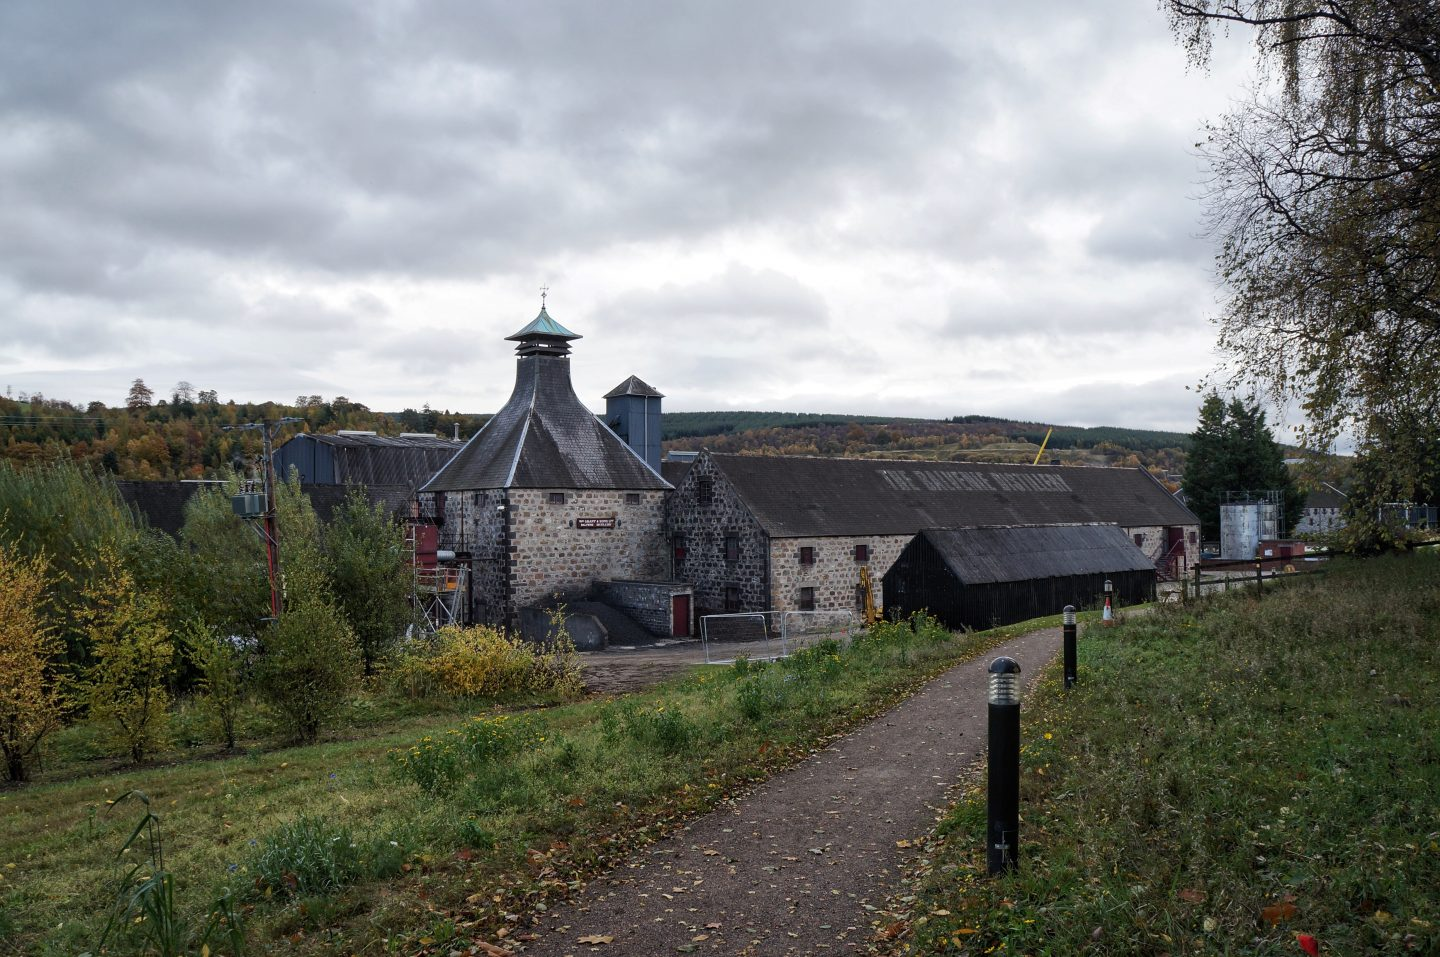 The Balvenie distillery tour